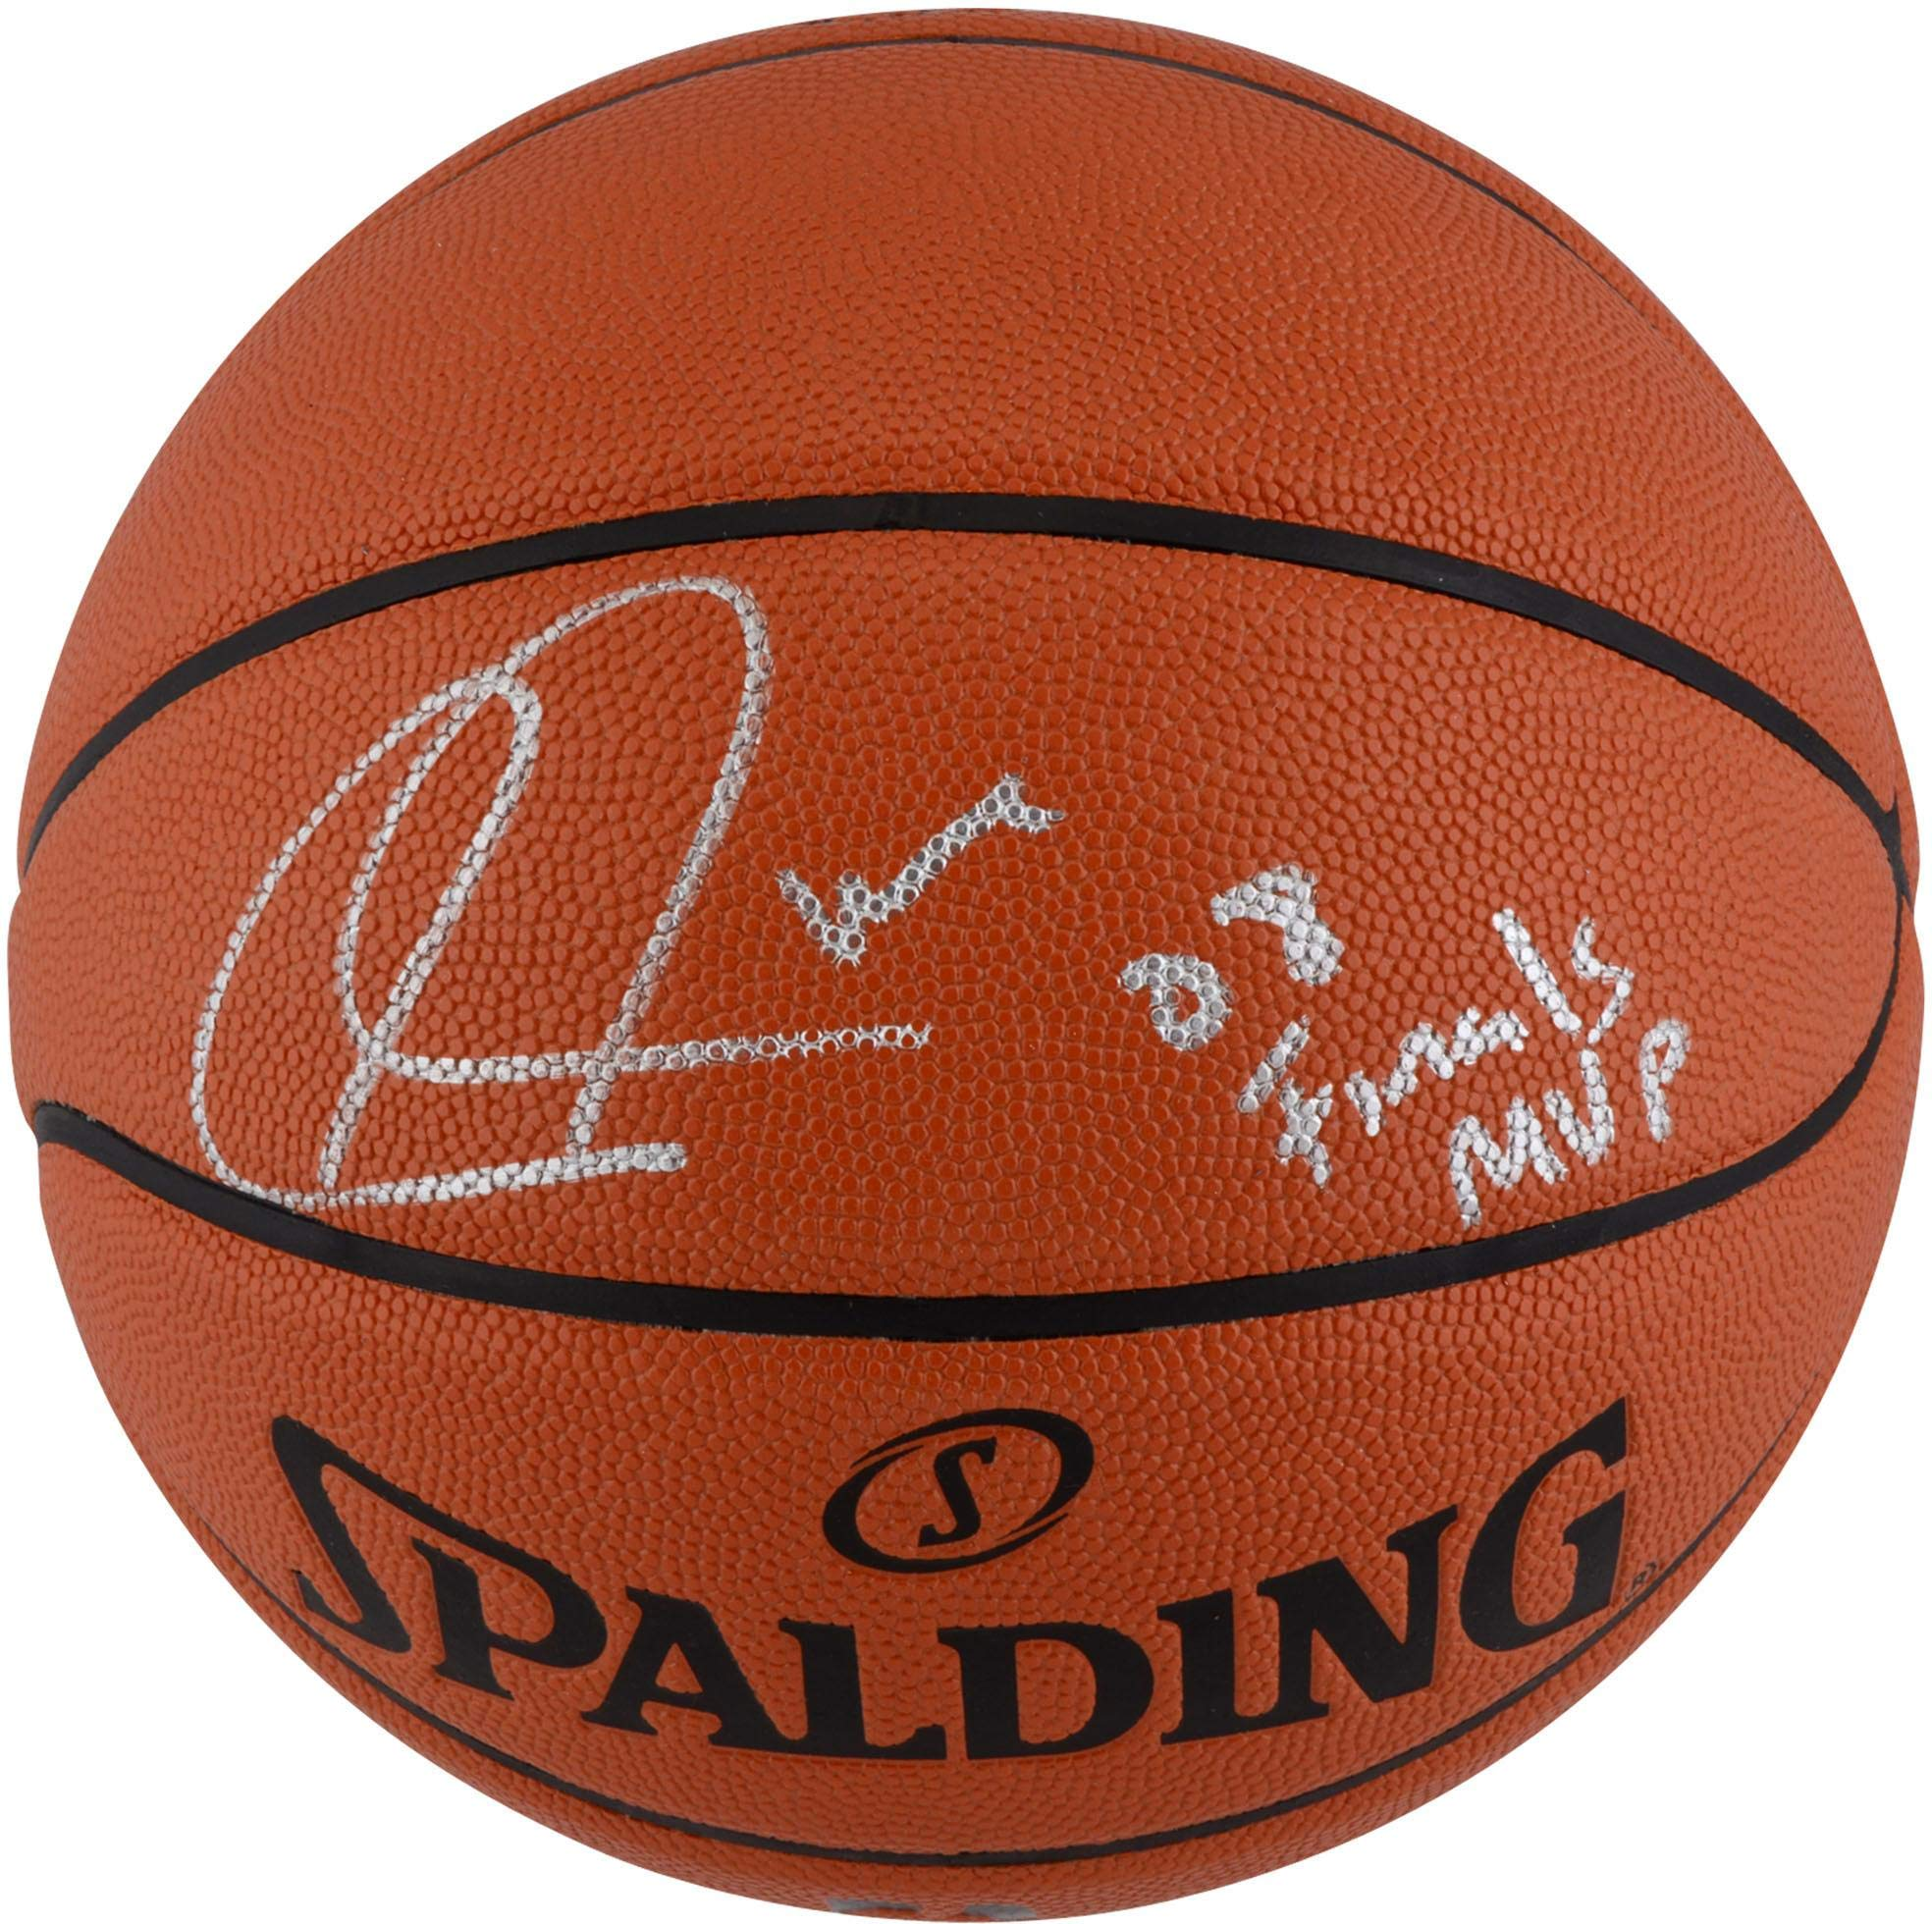 "Paul Pierce Boston Celtics Autographed Indoor/Outdoor Basketball with""08 Finals MVP"" Inscription Fanatics Authentic Certified"